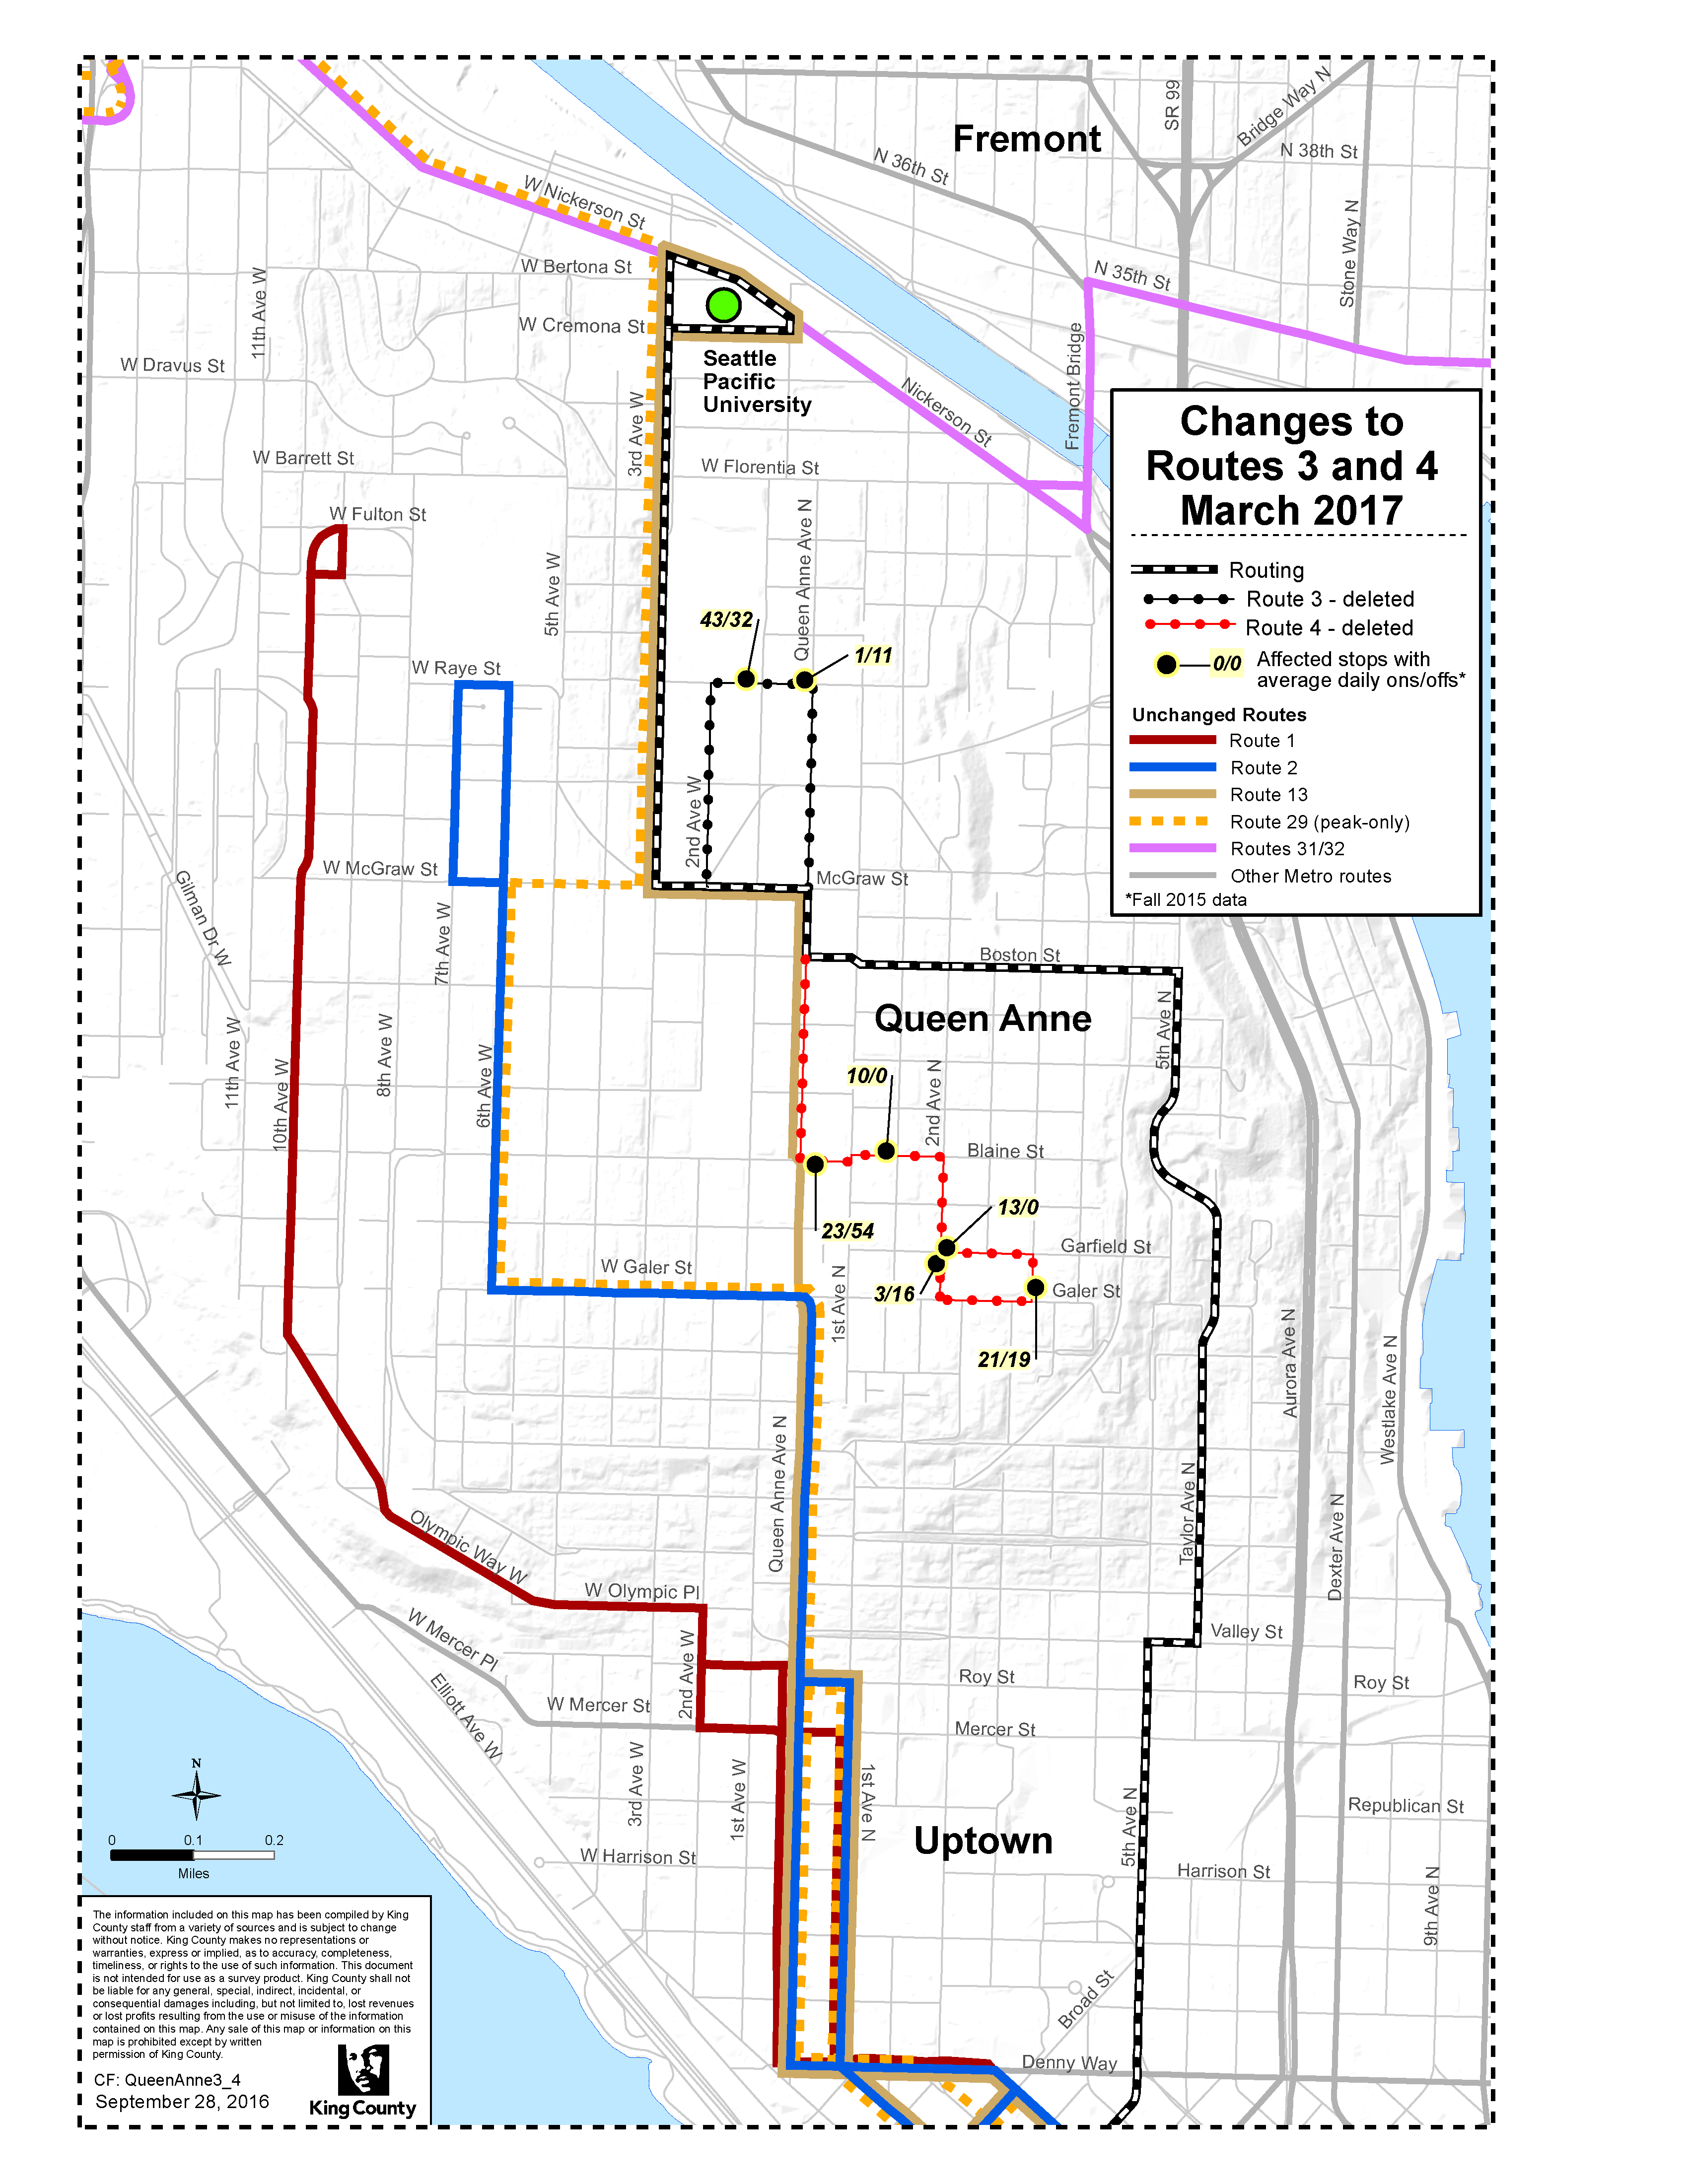 Metro to extend routes 3 and 4 to serve Seattle Pacific ... on seattle ferry parking map, seattle i 5 map, seattle seatac airport terminal map, seattle king county map, seattle monorail route map, seattle streetcar route map, seattle population density map, seattle rail map, houston metro lines map, seattle metro city map, seattle subway system map, king metro bus map, seattle transit map, seattle eastside map bellevue, seattle washington map, seattle metro route 75, houston metro bus map, seattle underground bus tunnel, alaskan way seattle map,